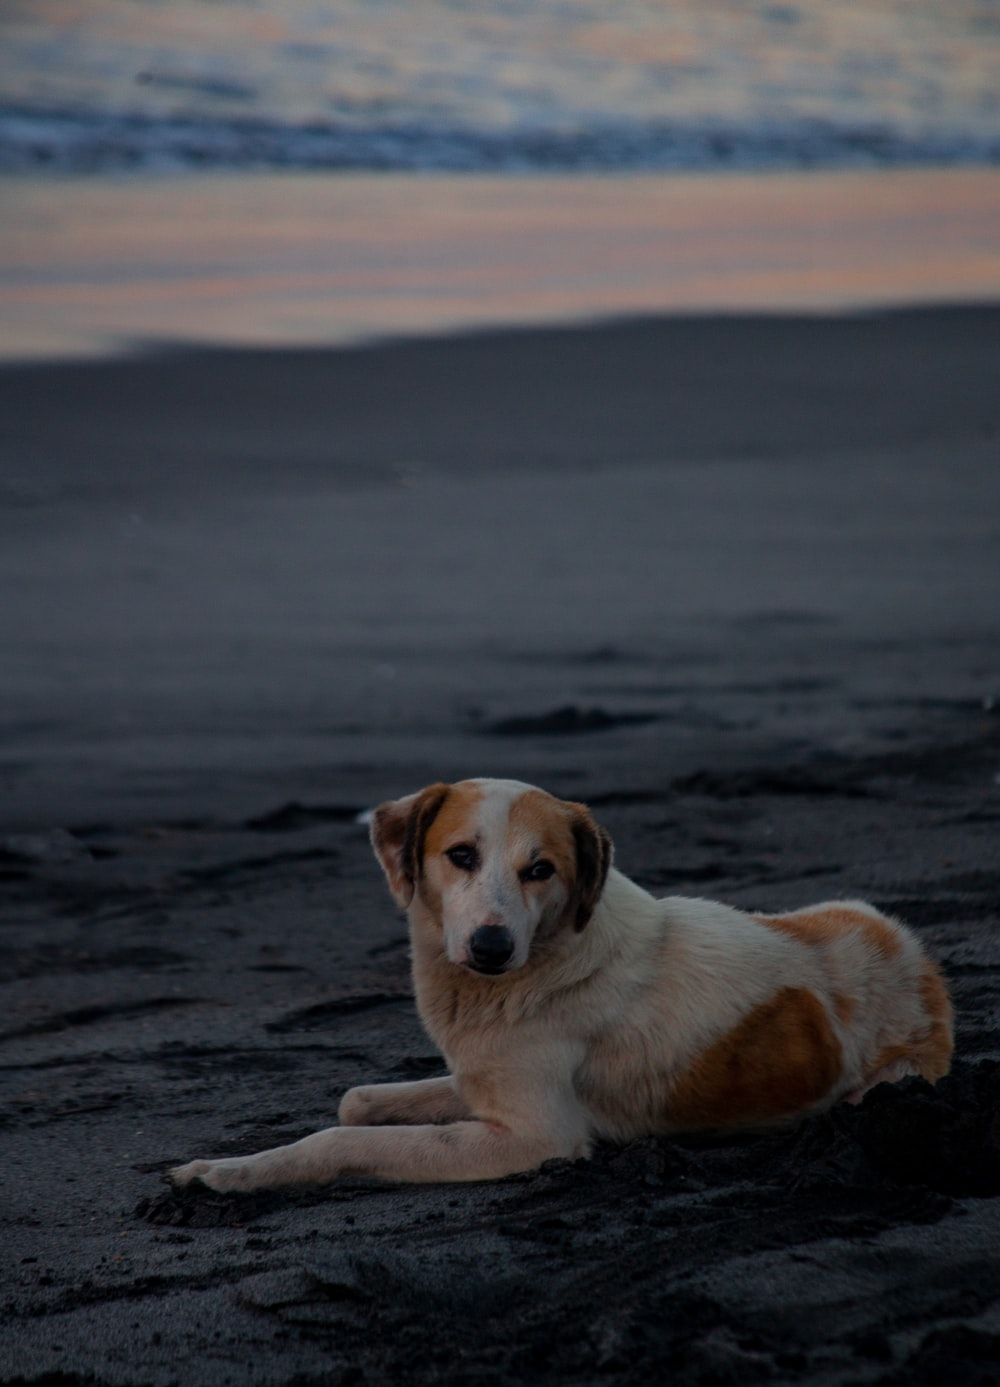 brown and white short coated dog lying on the beach during daytime